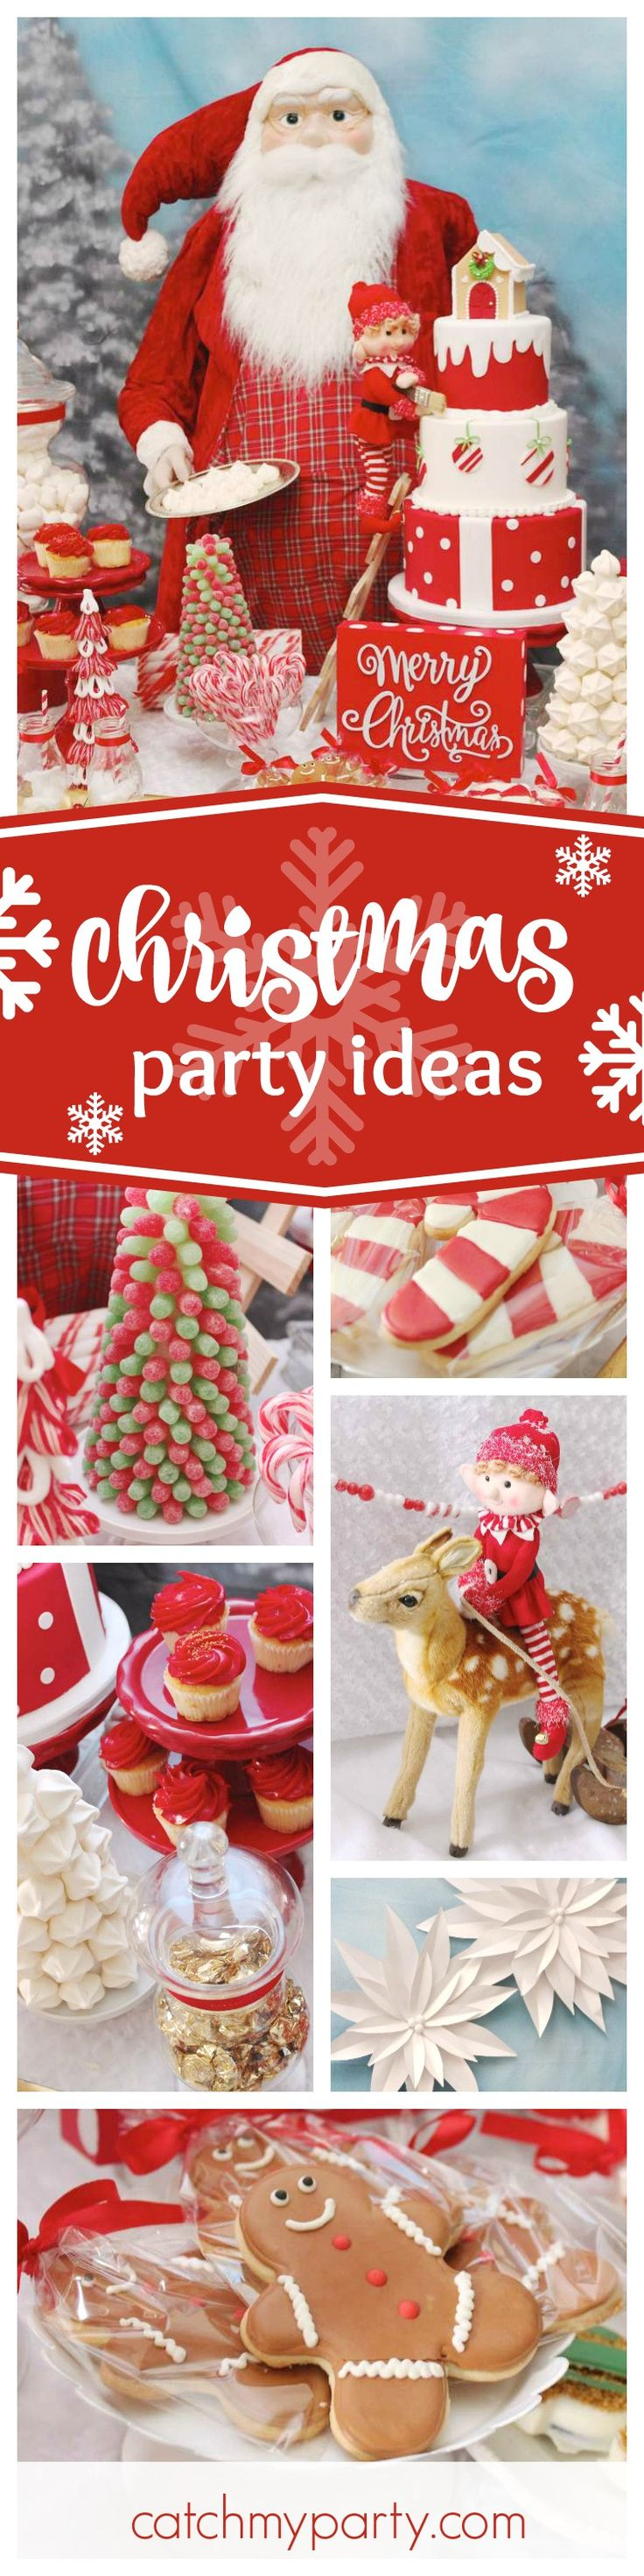 Check out this cheerful Santa's Little Bakery Christmas party. The elves decorating the dessert table are just so much fun! See more party ideas and share yours at CatchMyParty.com